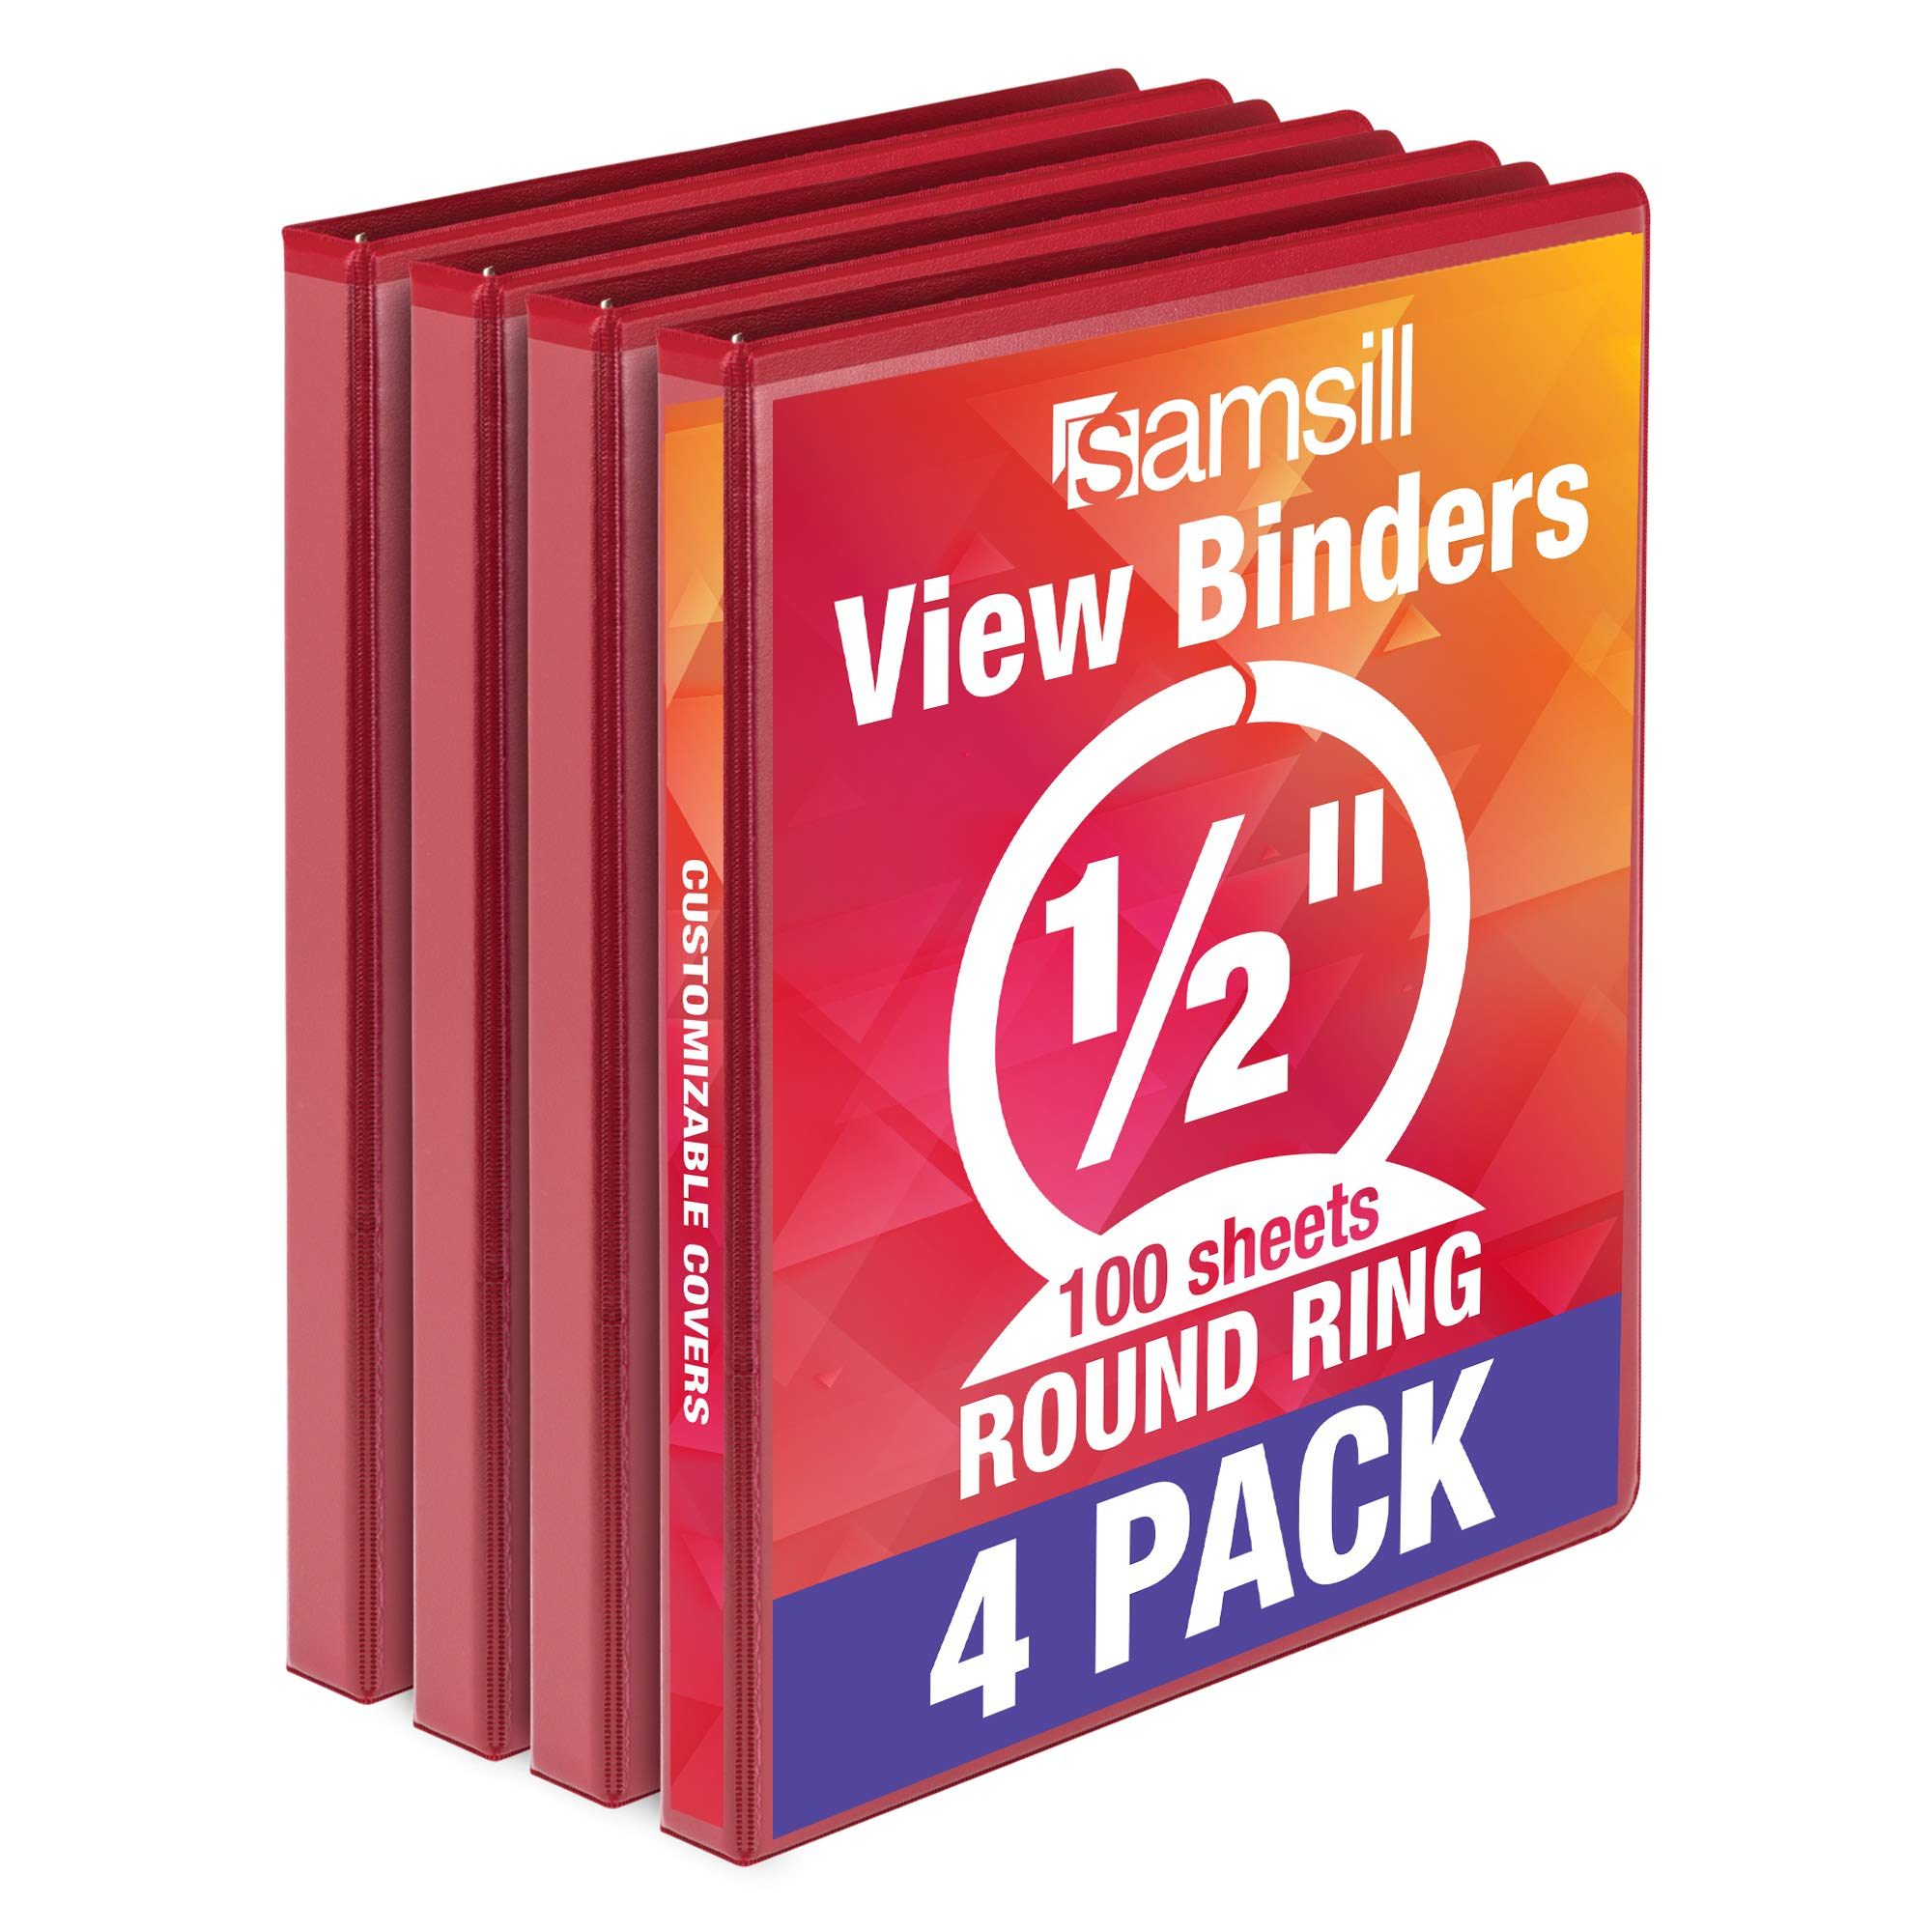 Samsill Economy 3 Ring Binder Organizer, .5 Inch Round Ring Binder, Customizable Clear View Cover, Red Bulk Binder 4 Pack, Model:MP48513